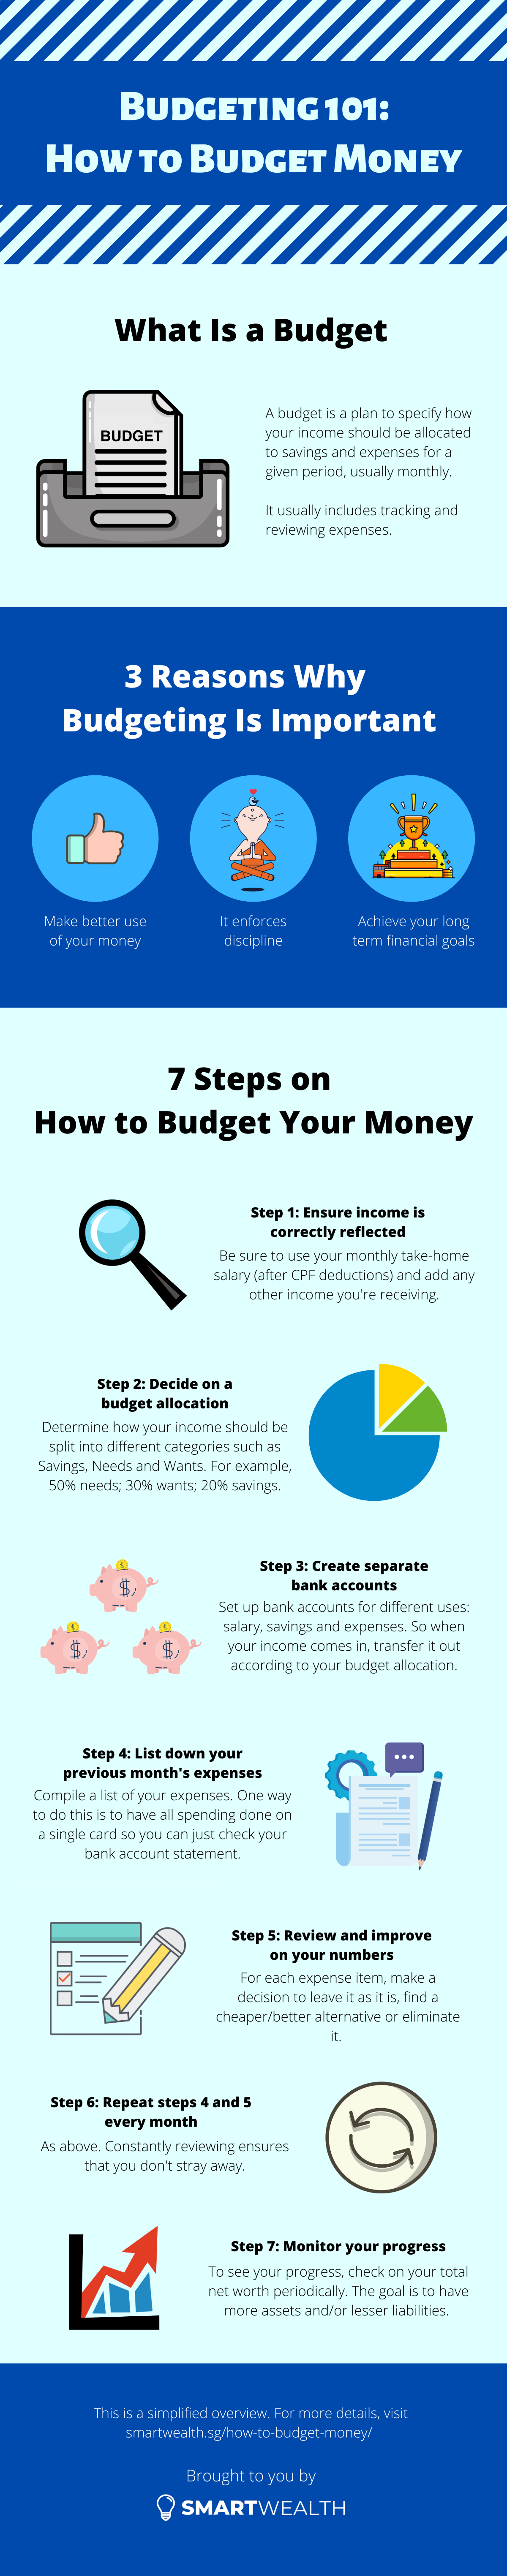 how to budget money infographic